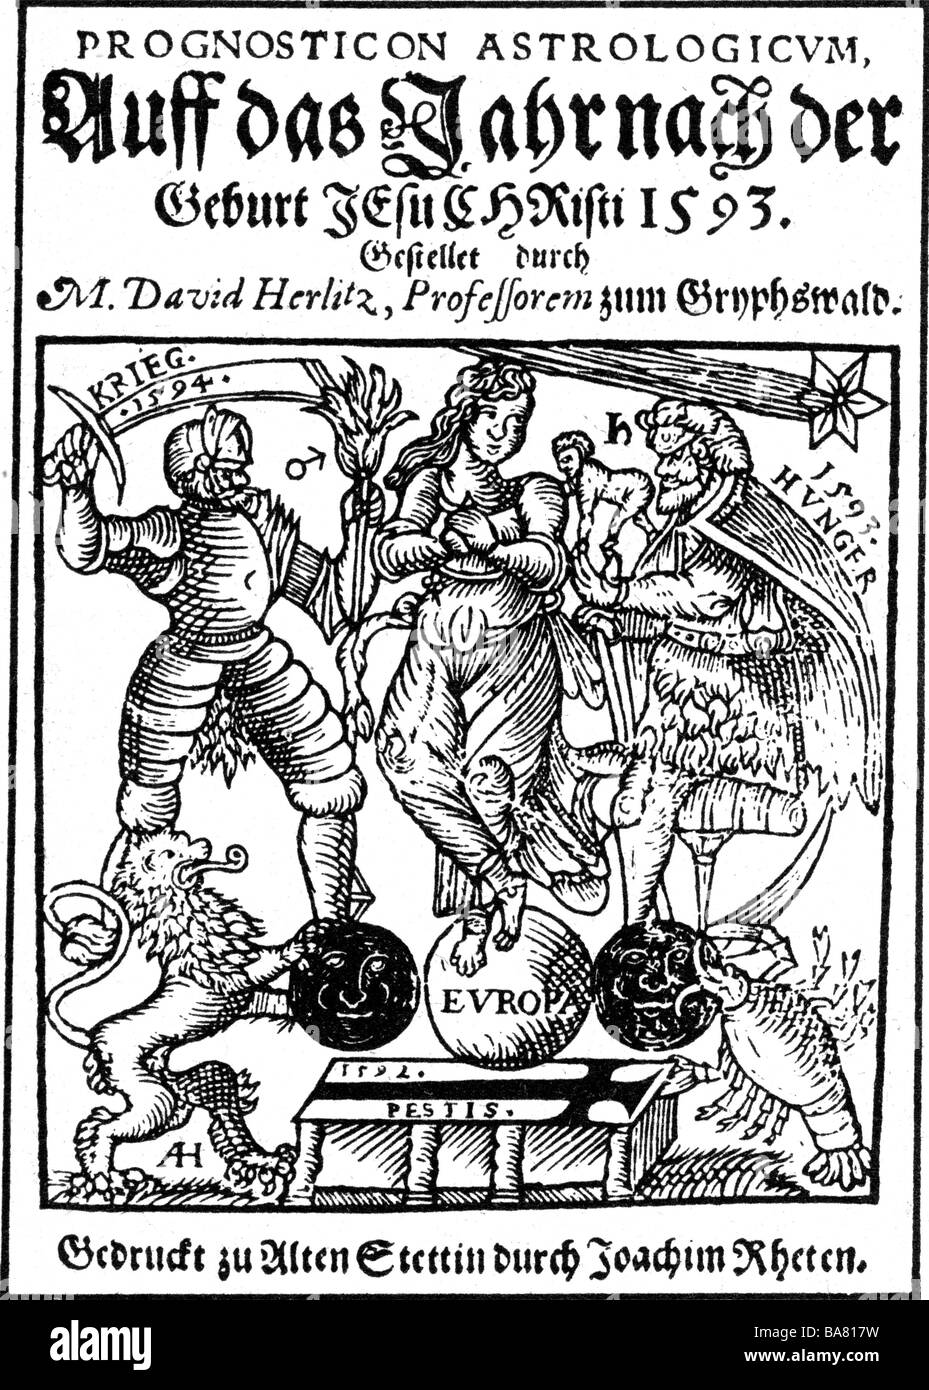 Herlitz, David, 28.12.1557 - 15.8.1636, German mathematician and physician, works, horoscope for the year 1593, - Stock Image